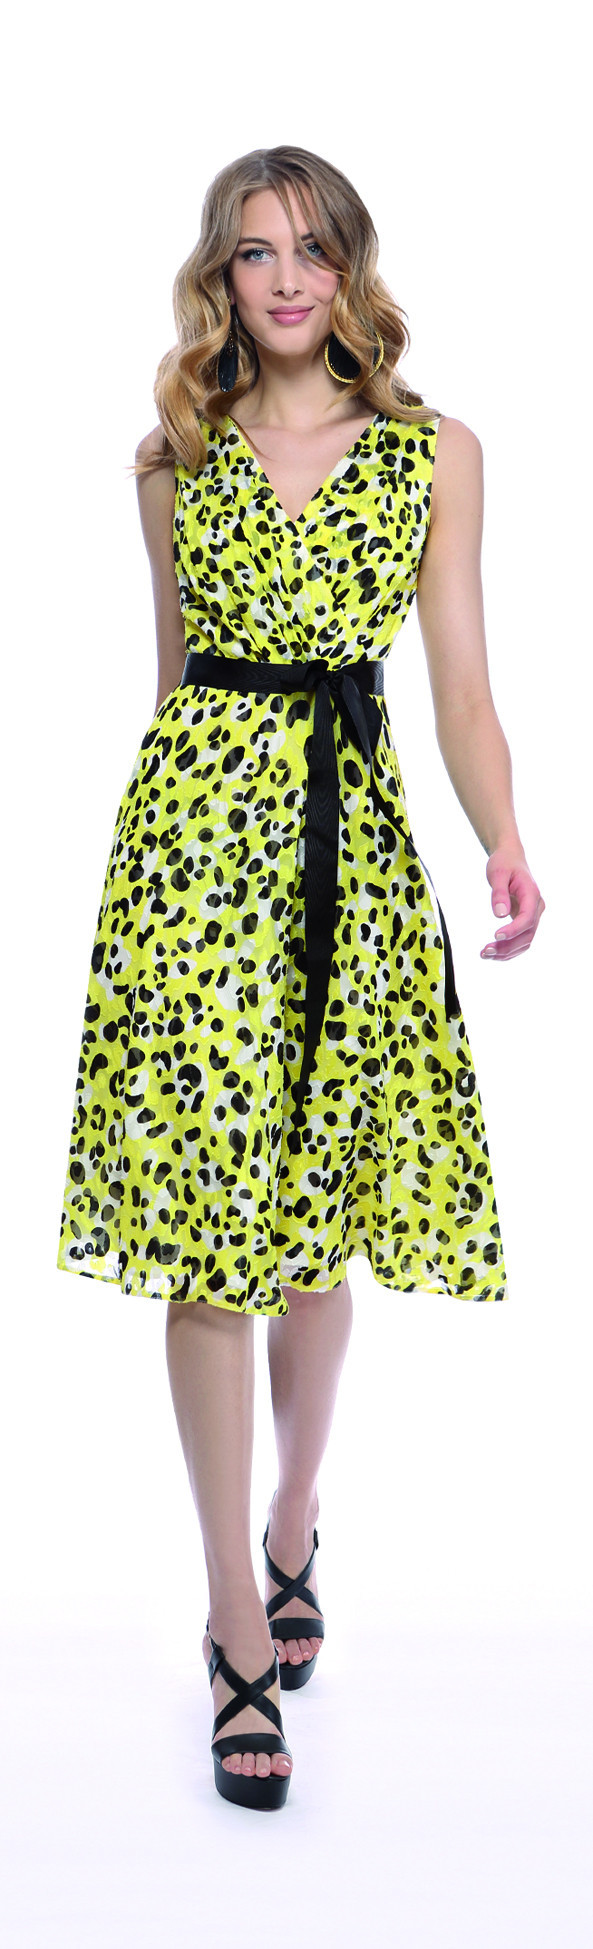 Michaela Louise Lemon And Black Dress - length: below the knee; neckline: v-neck; sleeve style: sleeveless; style: prom dress; waist detail: belted waist/tie at waist/drawstring; predominant colour: lime; secondary colour: black; occasions: evening; fit: fitted at waist & bust; fibres: polyester/polyamide - 100%; sleeve length: sleeveless; pattern type: fabric; pattern: patterned/print; texture group: other - light to midweight; season: s/s 2016; wardrobe: event